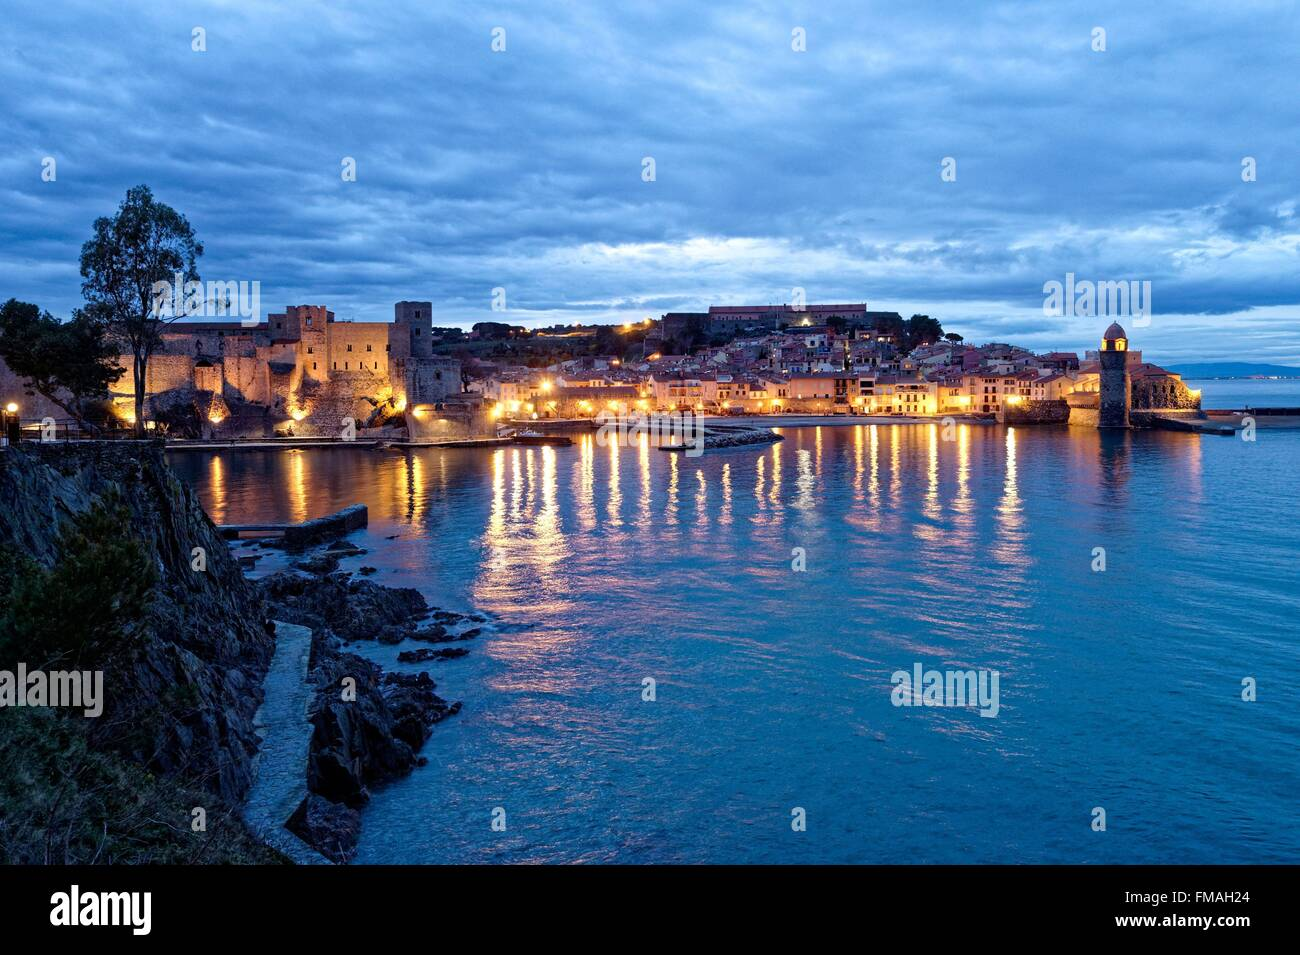 France, Pyrenees Orientales, Collioure, church of Notre Dame des Anges, the Royal castle dated XIIIth century - Stock Image